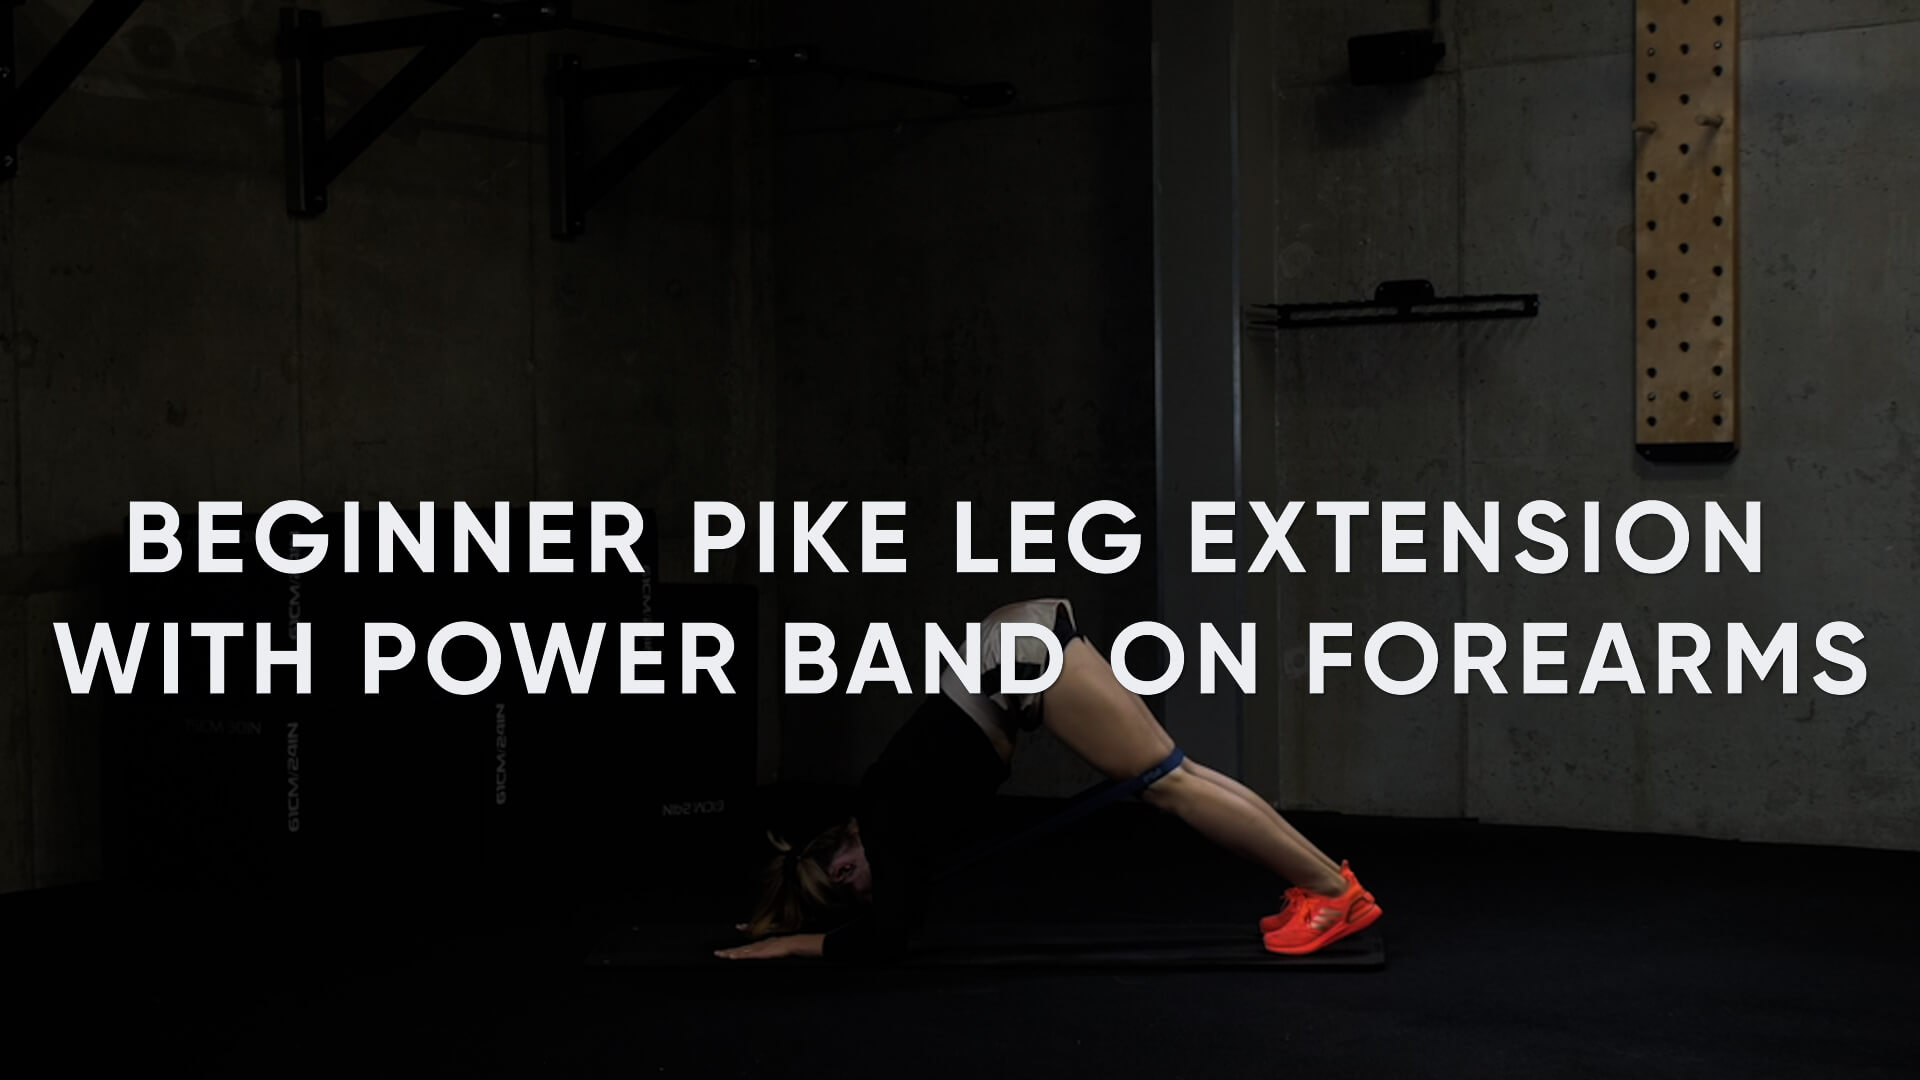 Beginner Pike Leg Extension with Power Band on Forearms